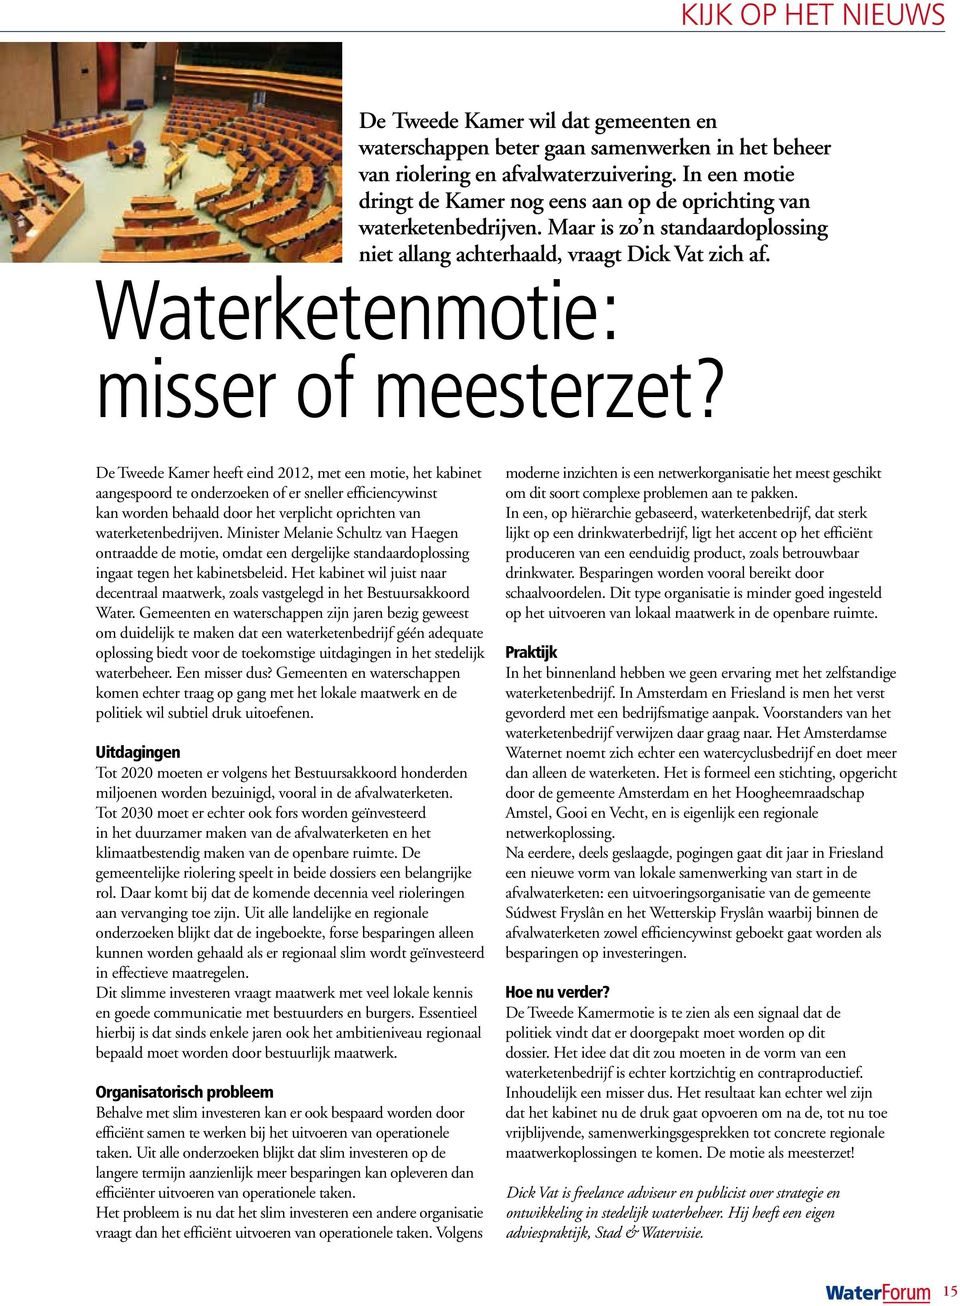 Waterketenmotie: misser of meesterzet?